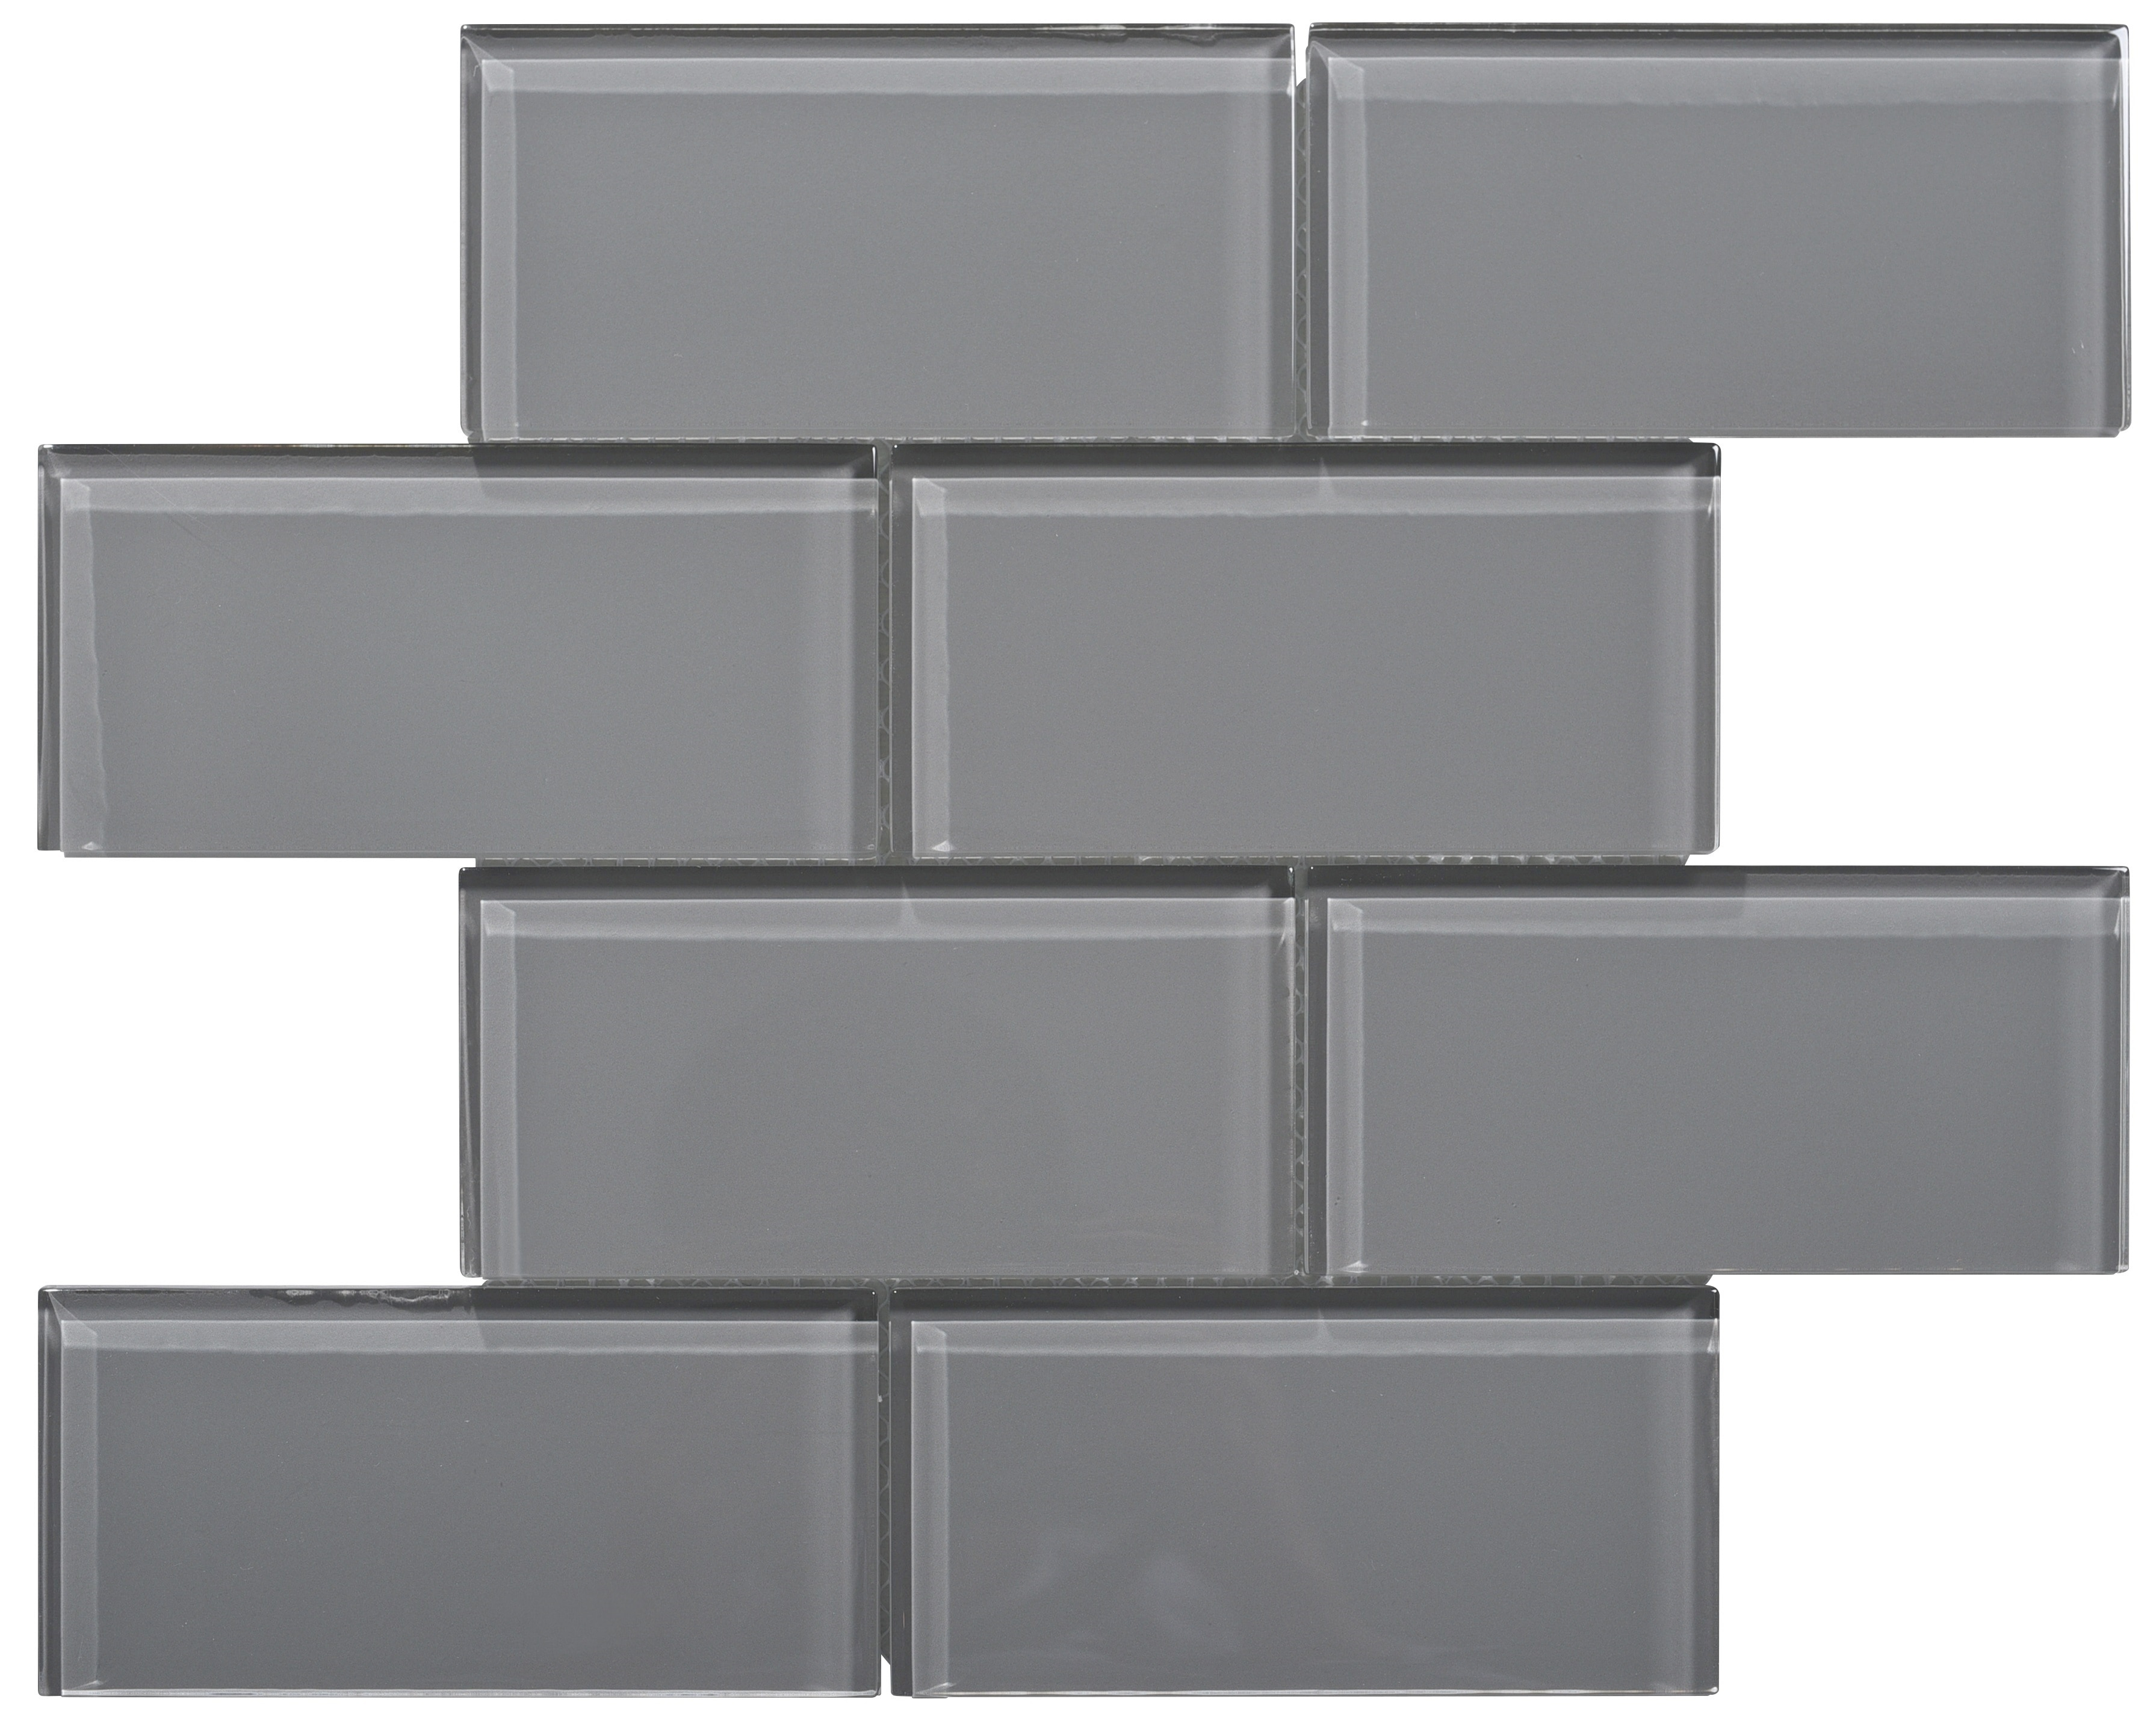 Glass Mosaic / 16 x 12 x 0.31 inches / Glossy Large Glass Subway Tile In Dark Gray 0